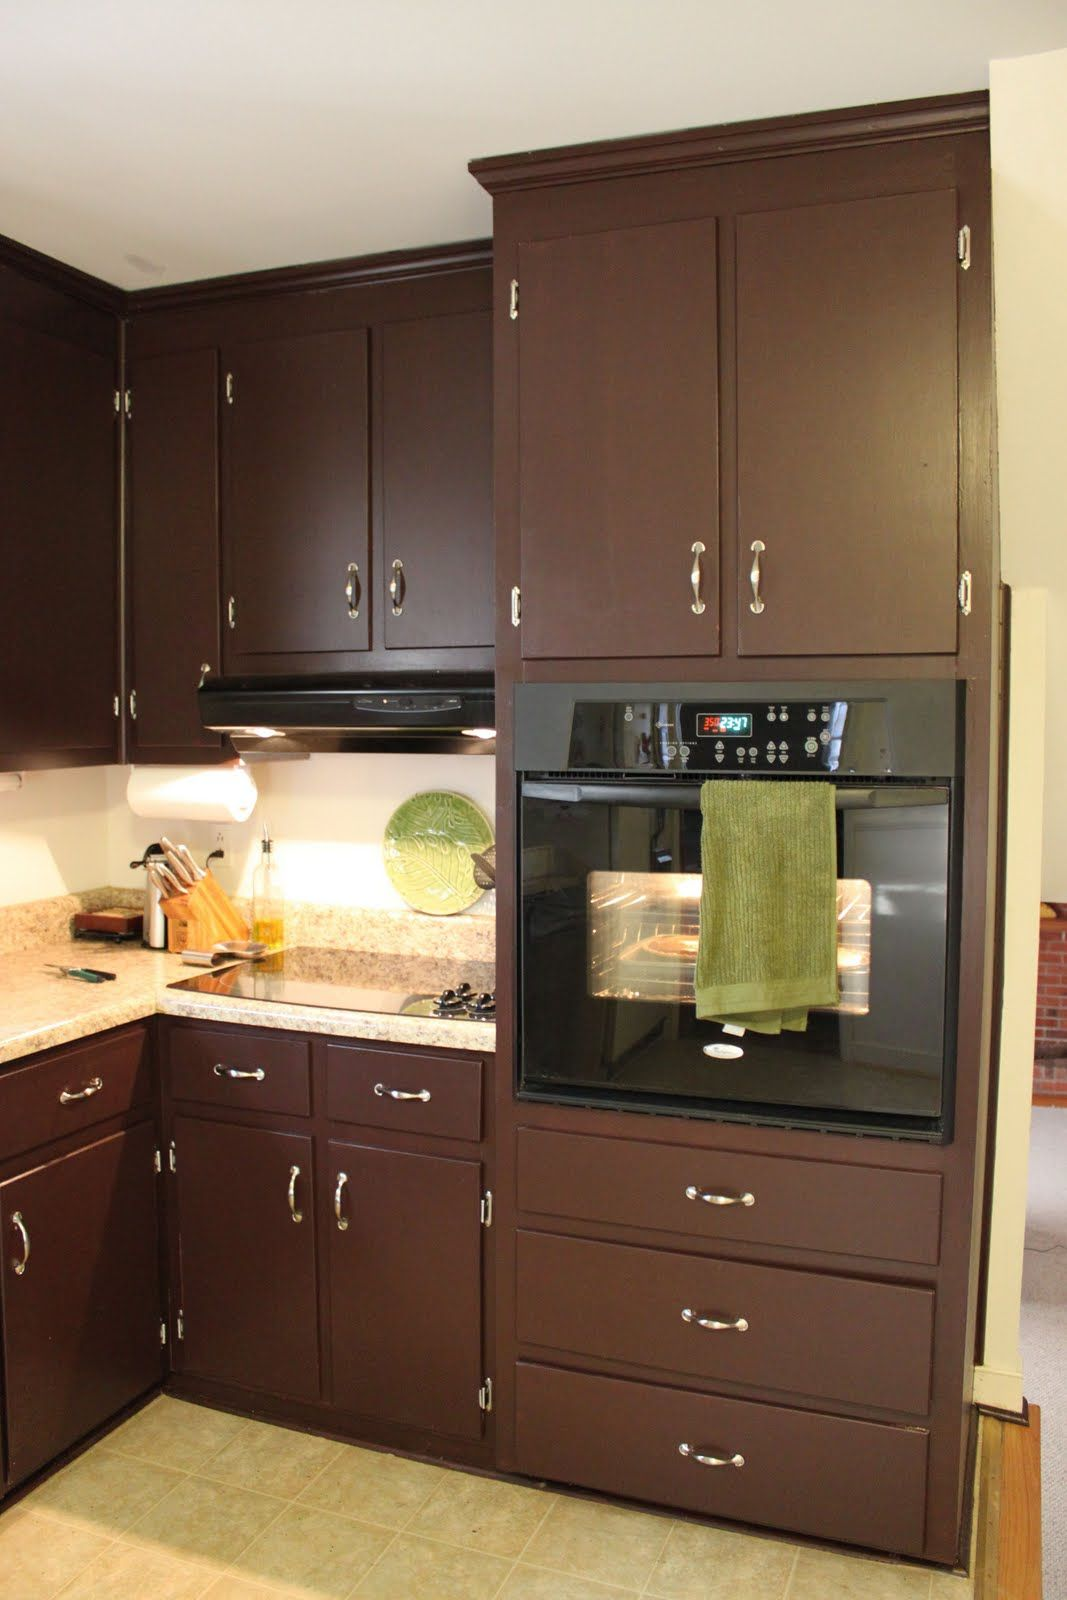 Kitchen With Brown Cabinets Brown Painted Kitchen Cabinets And Silver Hardware Looks